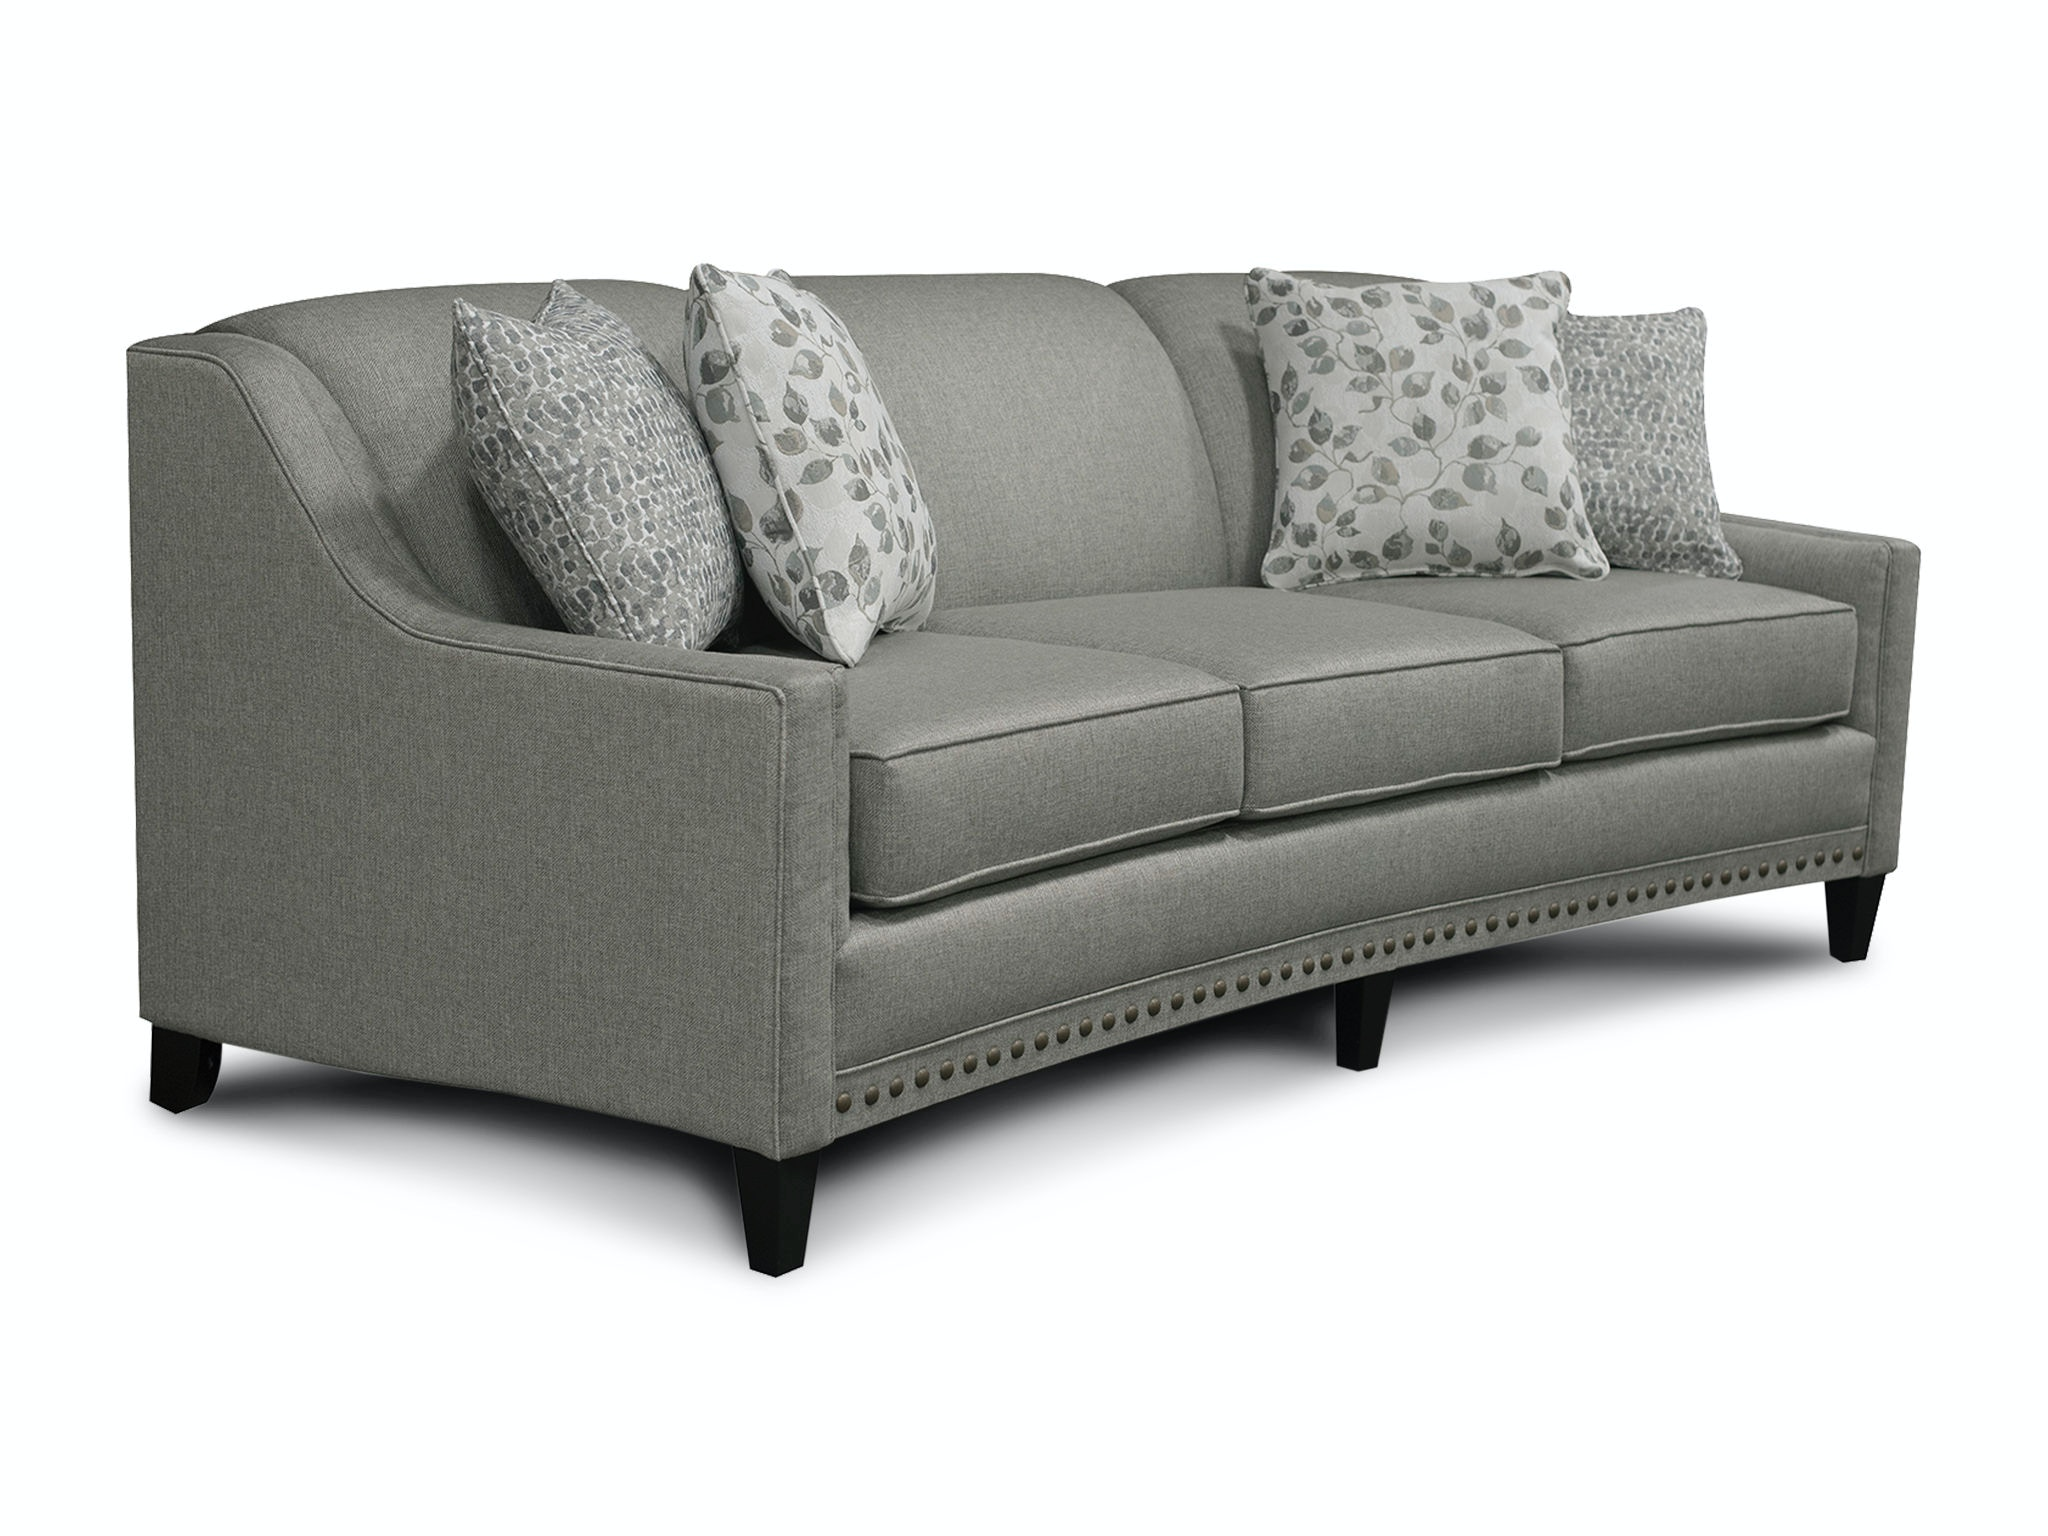 Awesome 7J05N. Meredith Sofa